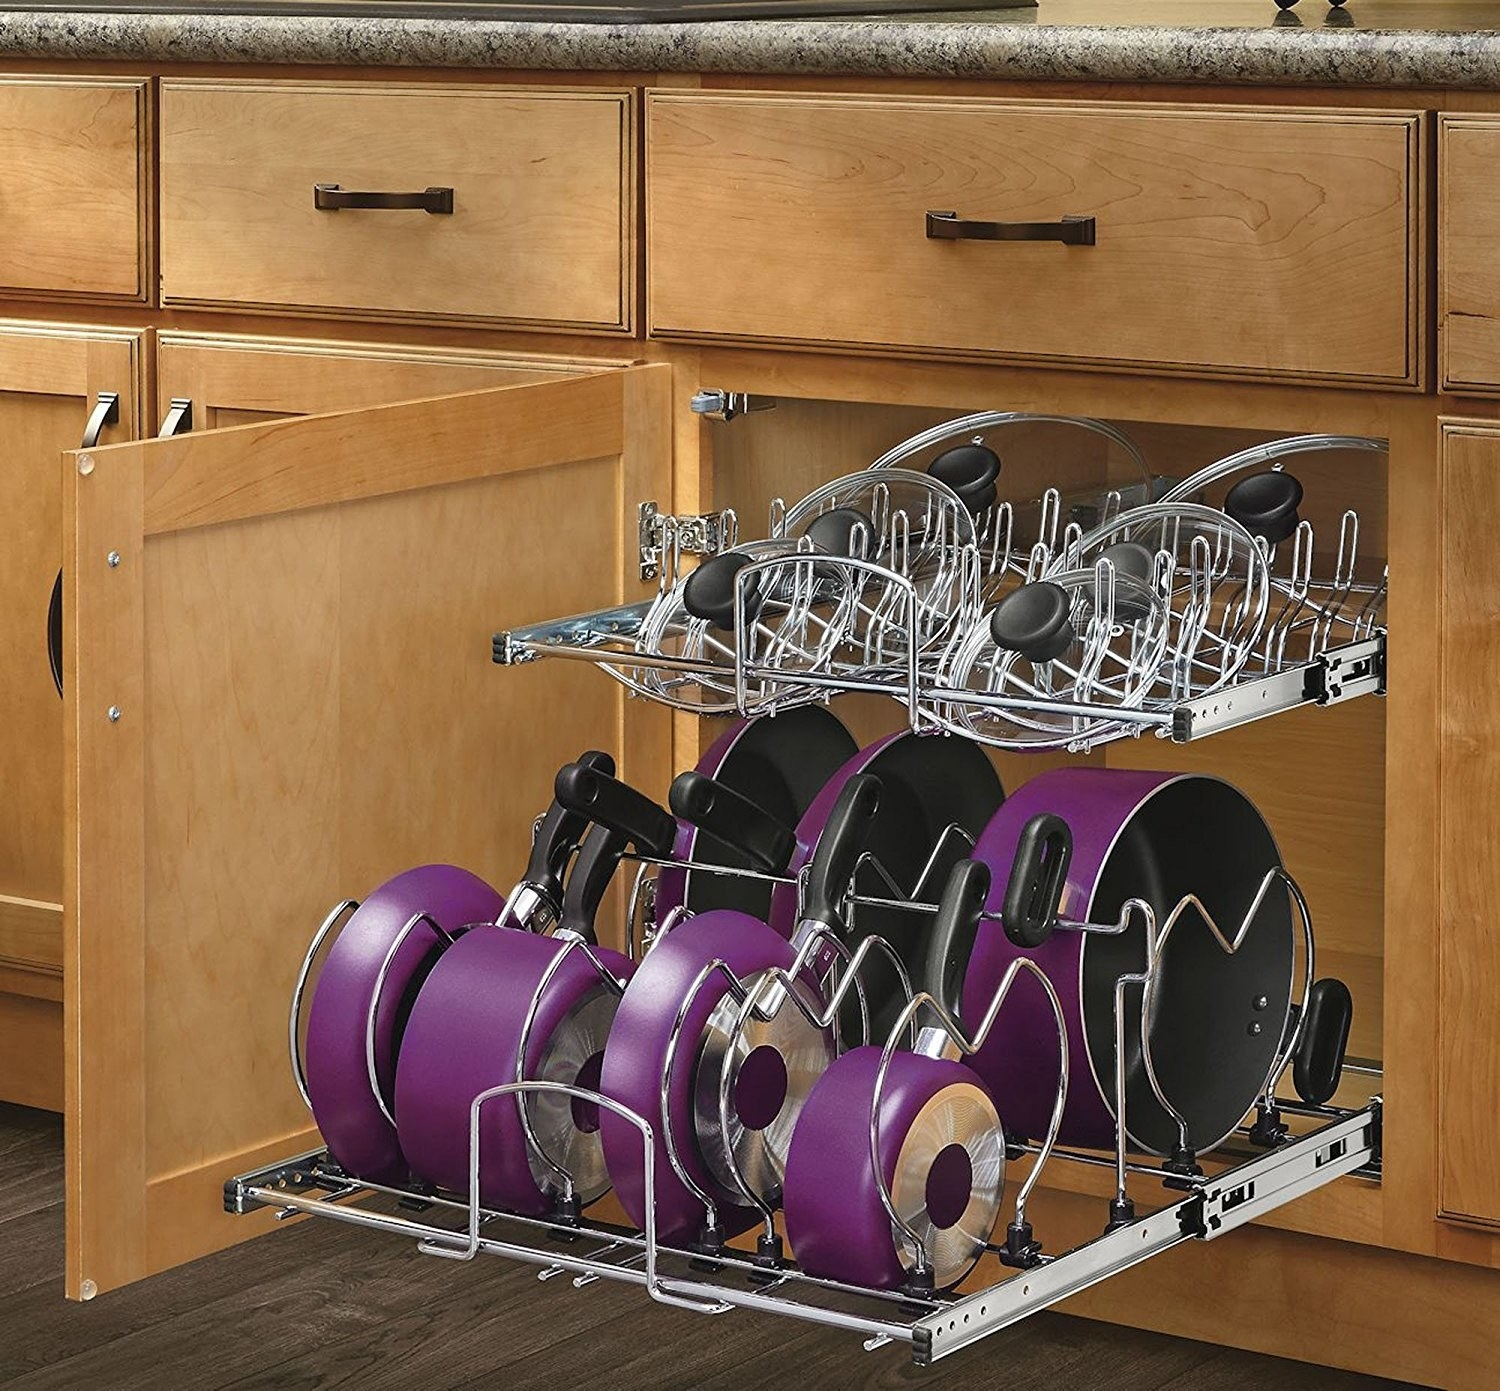 The metal organizer with seven pots/pans on the bottom and lids on top